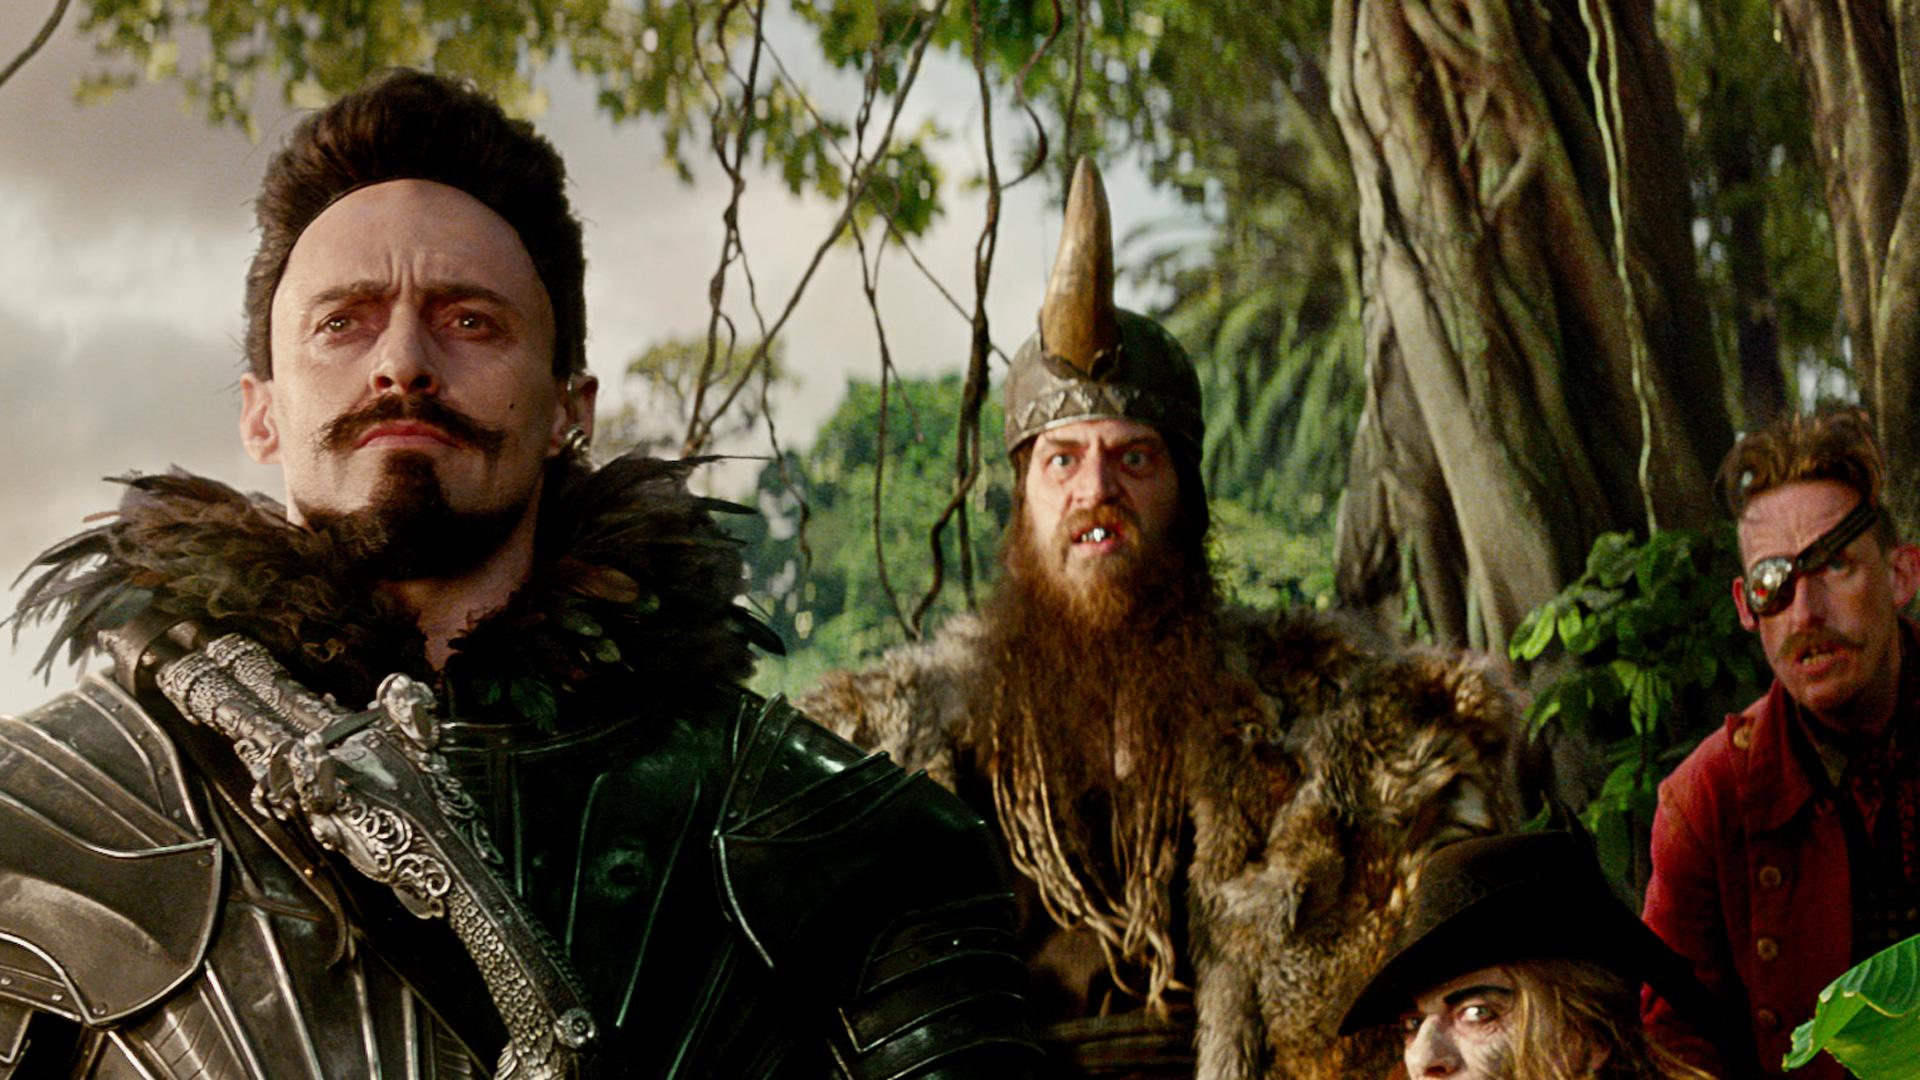 Box Office: 'Pan' Shaping Up to Be a Painful Flop